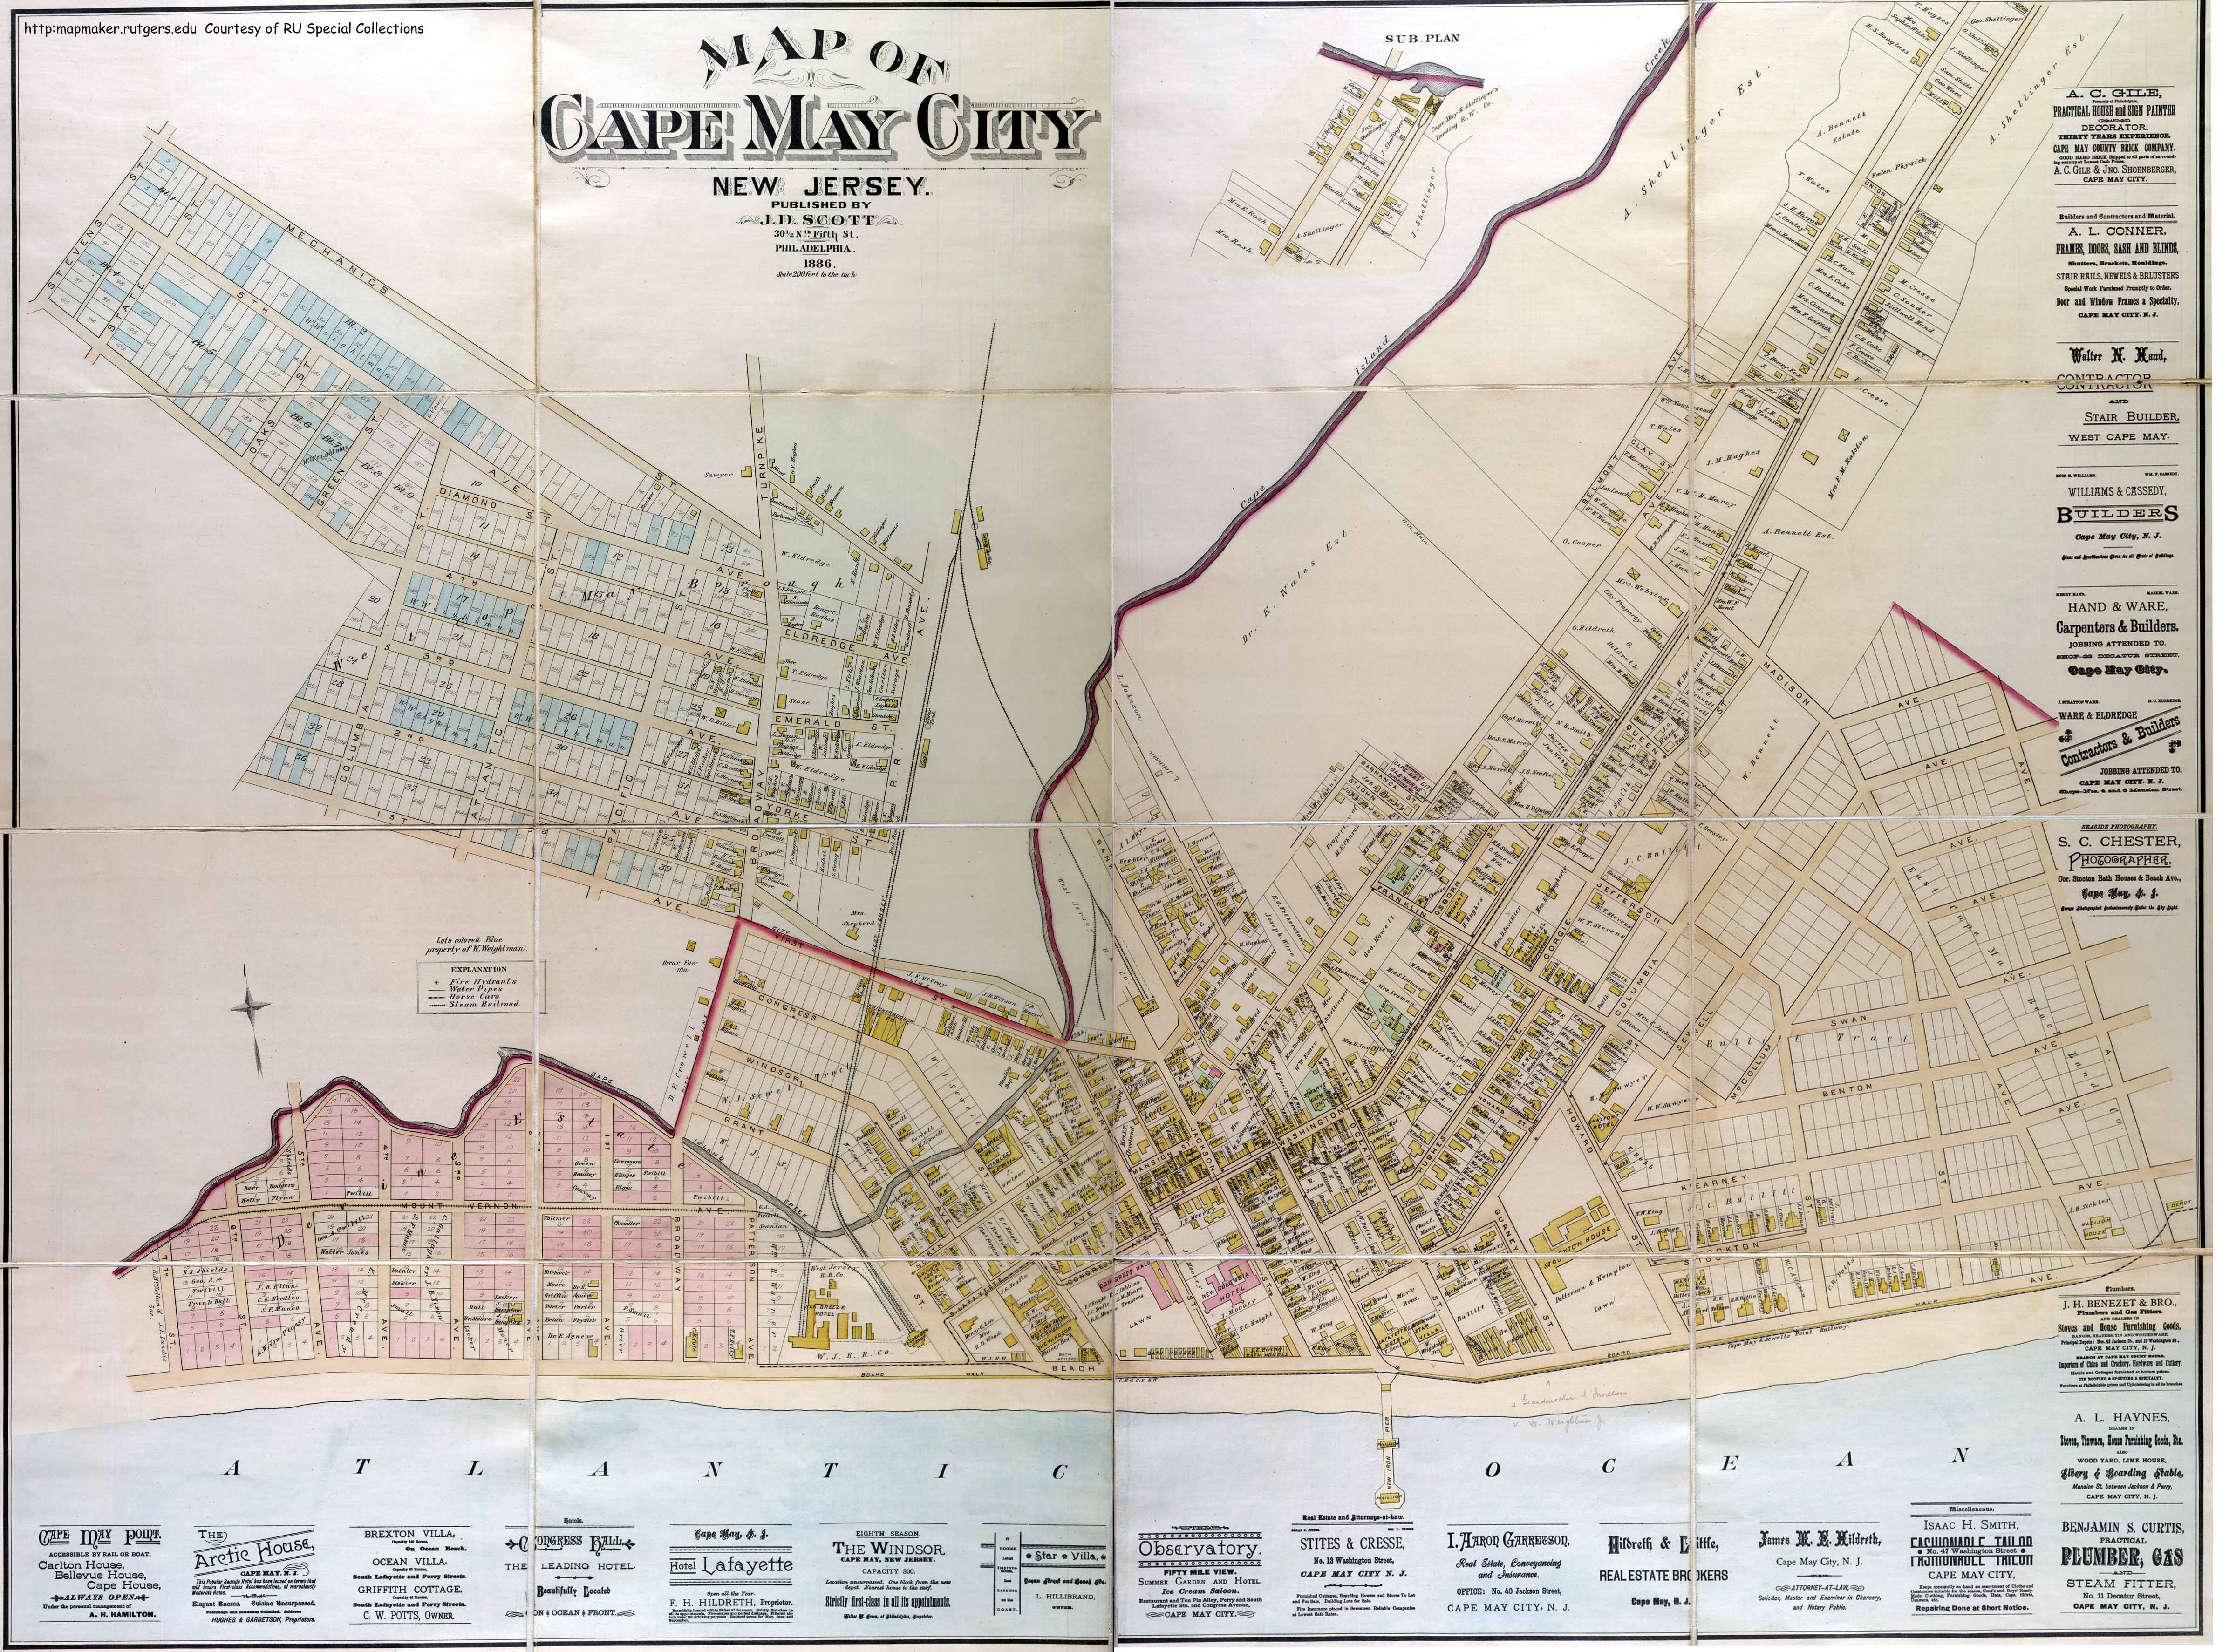 Historical Cape May County, New Jersey Maps